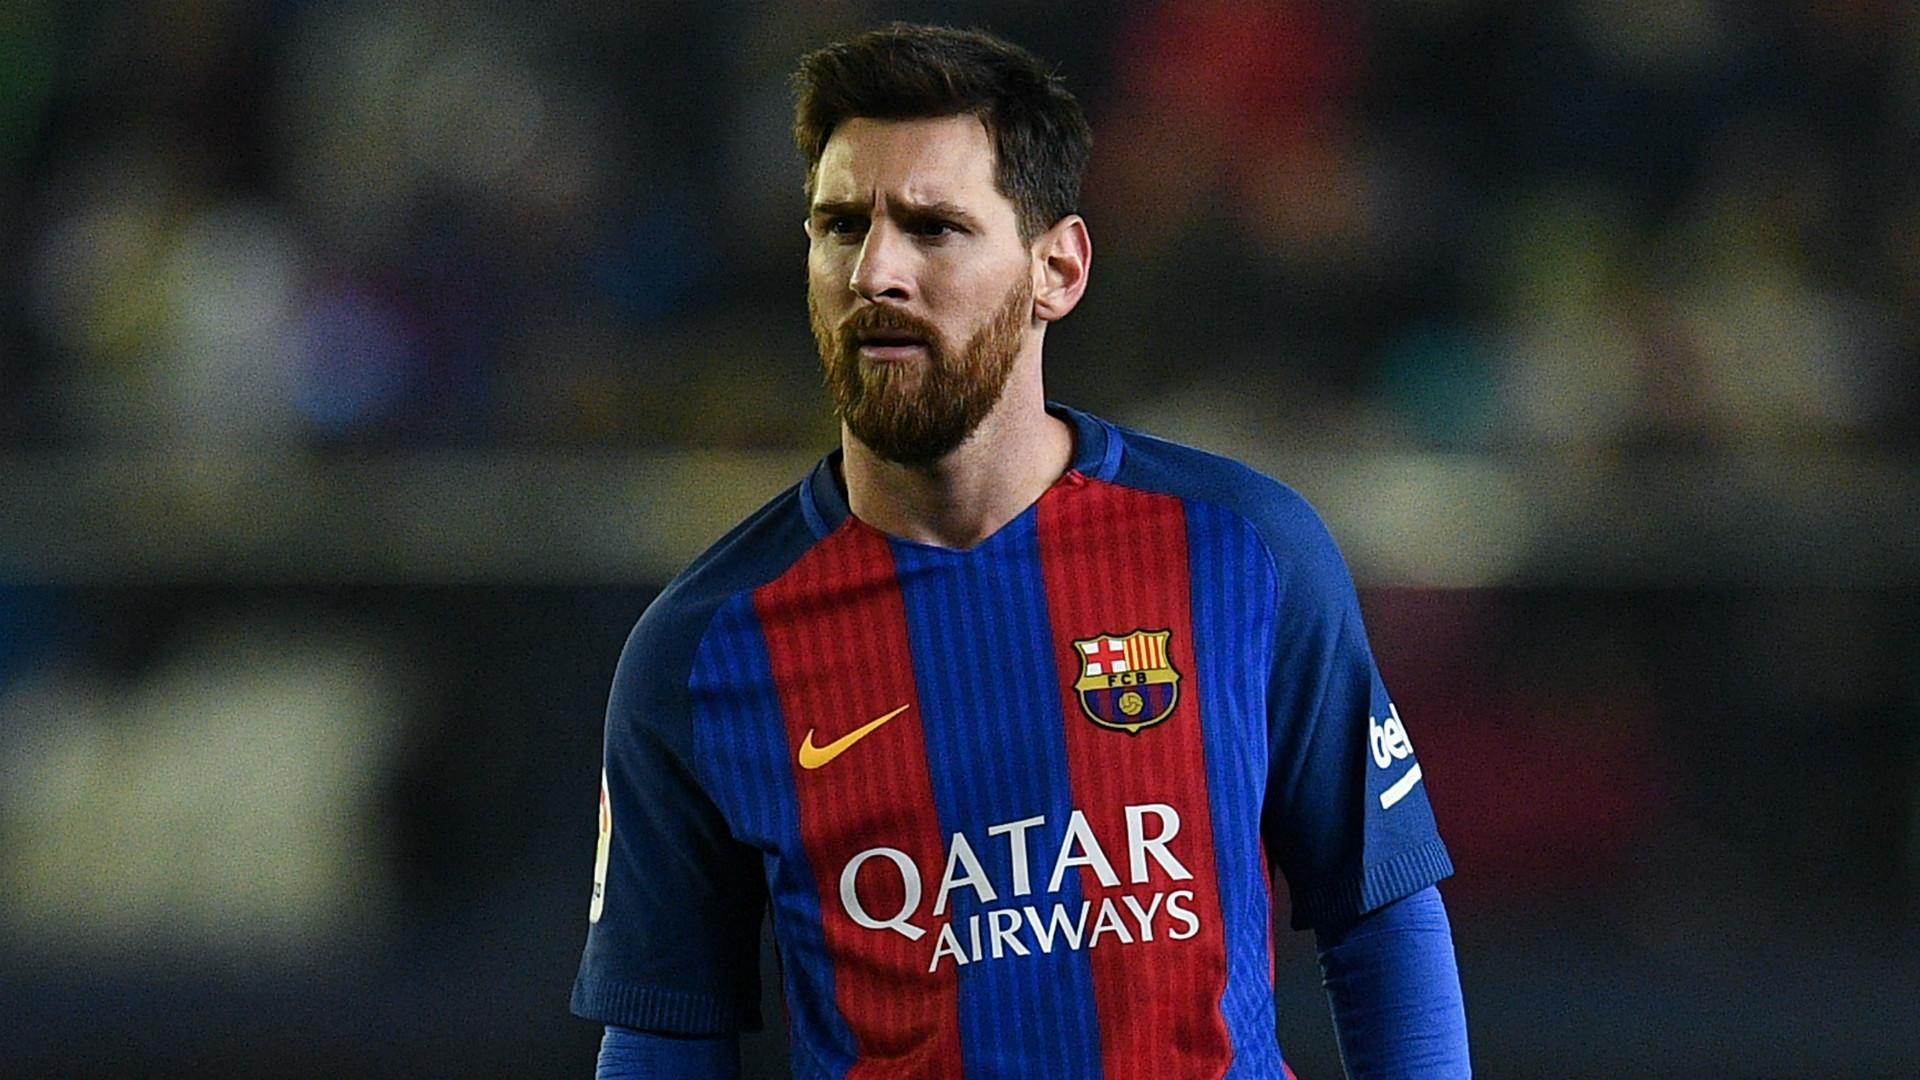 LaLiga: No danger of Lionel Messi leaving Barcelona, says father